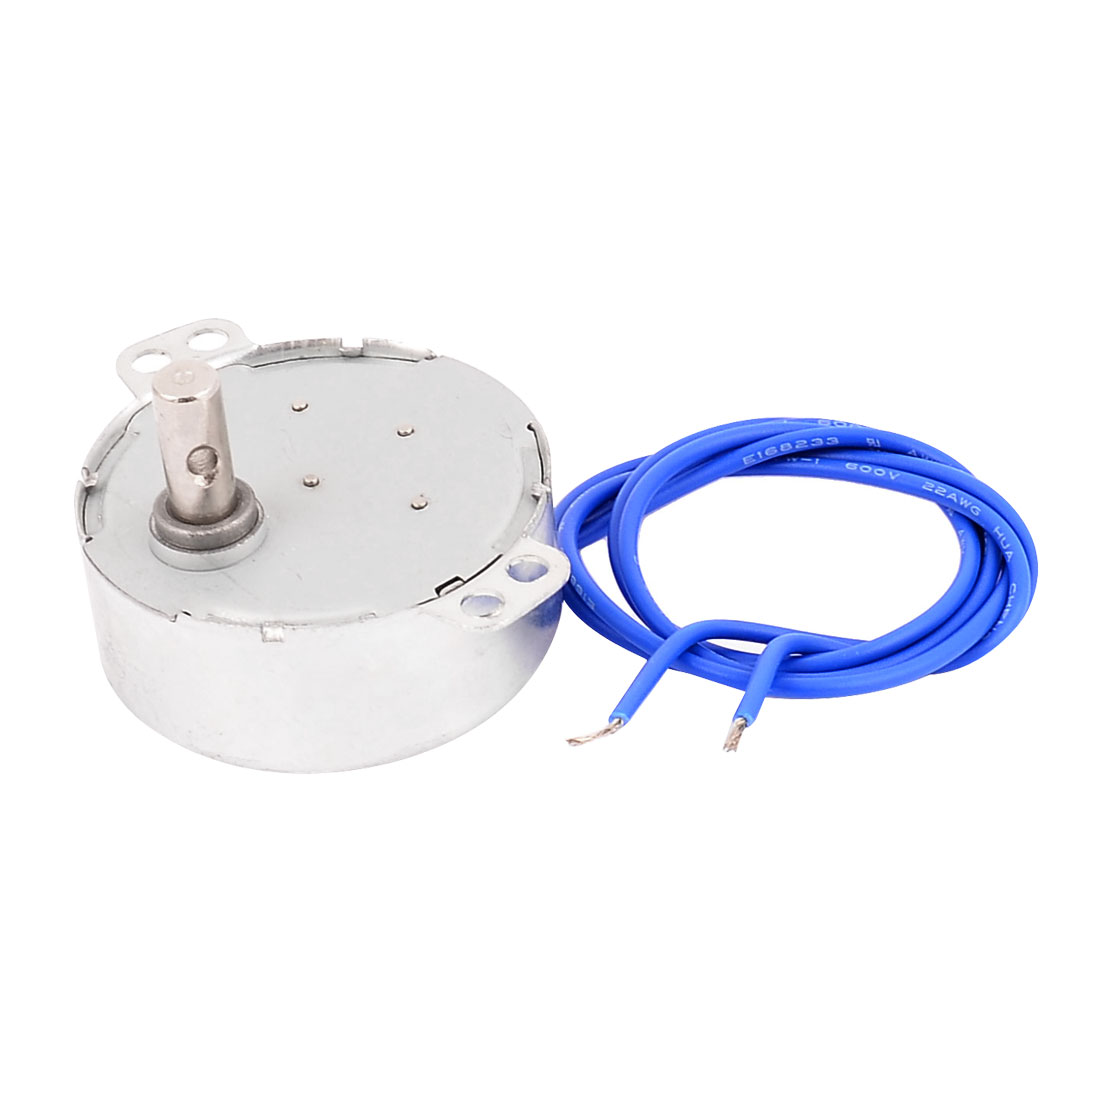 CCW/CW Direction 4W 50/60Hz Frequency 5-6RPM Synchronous Motor AC 100-127V